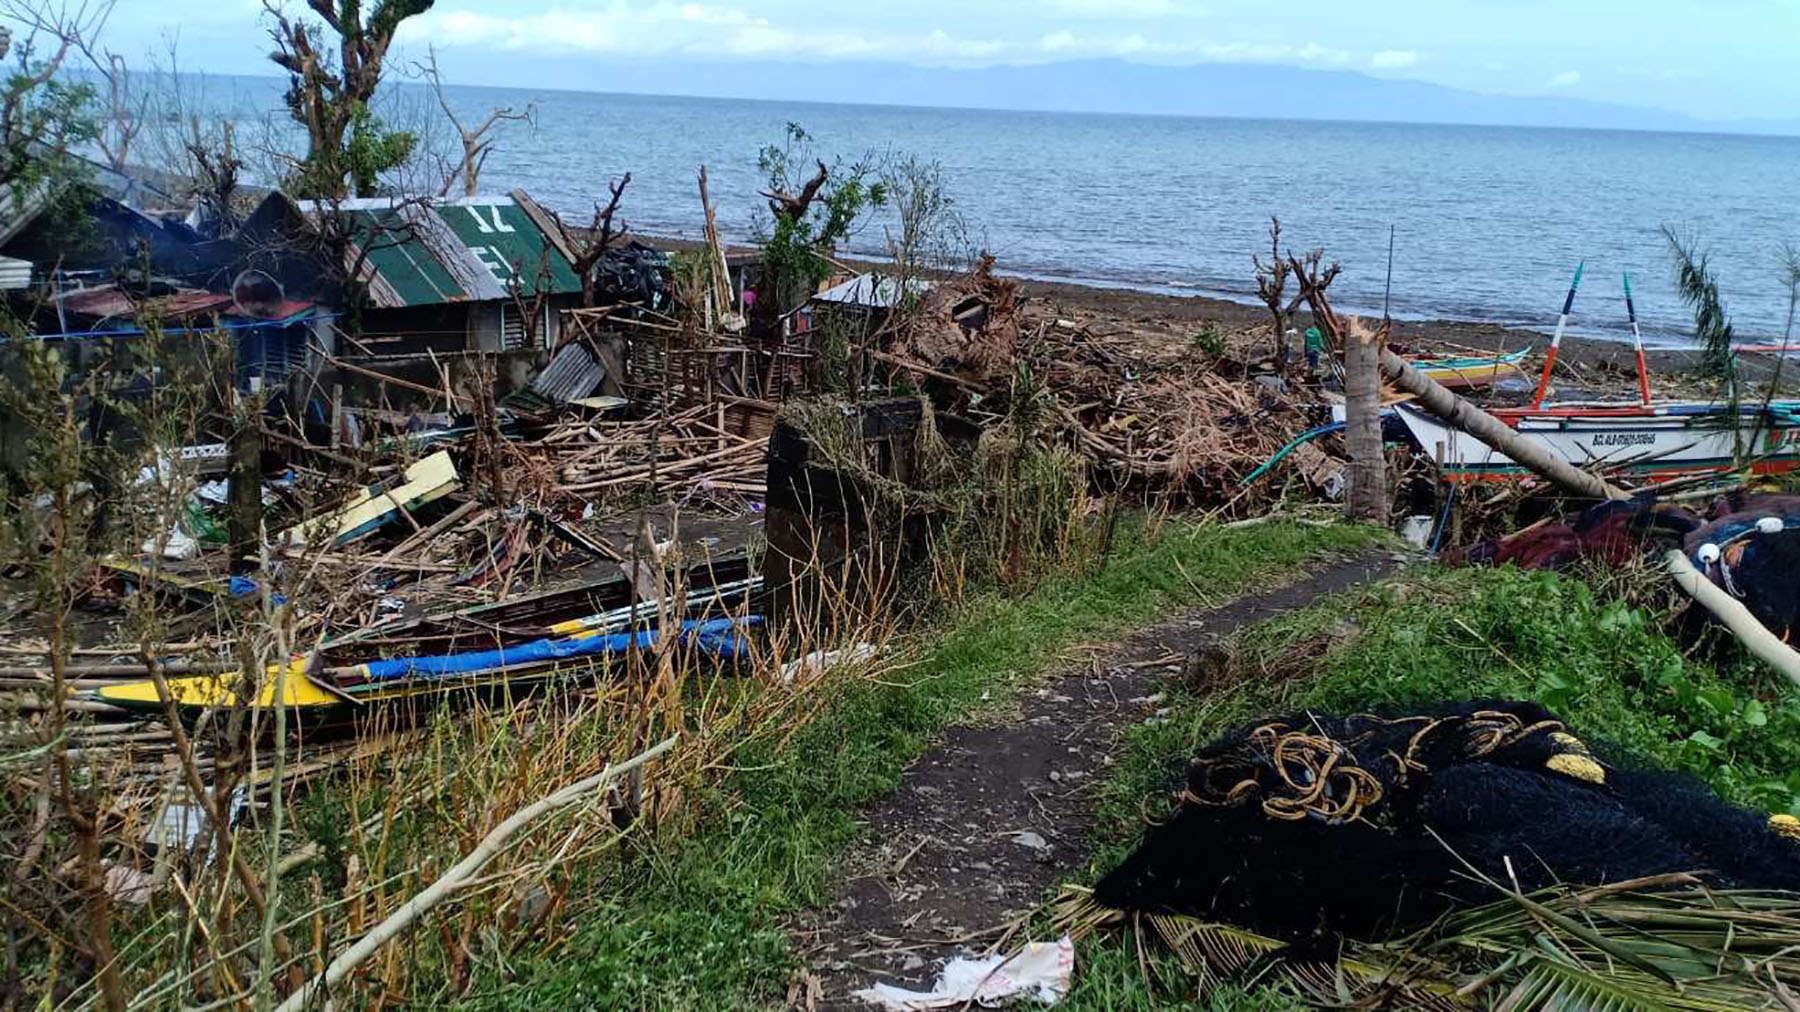 The aftermath of Typhoon Goni in Albay, Philippines, on Nov. 2, 2020. (Photo courtesy of Zaldy Co)